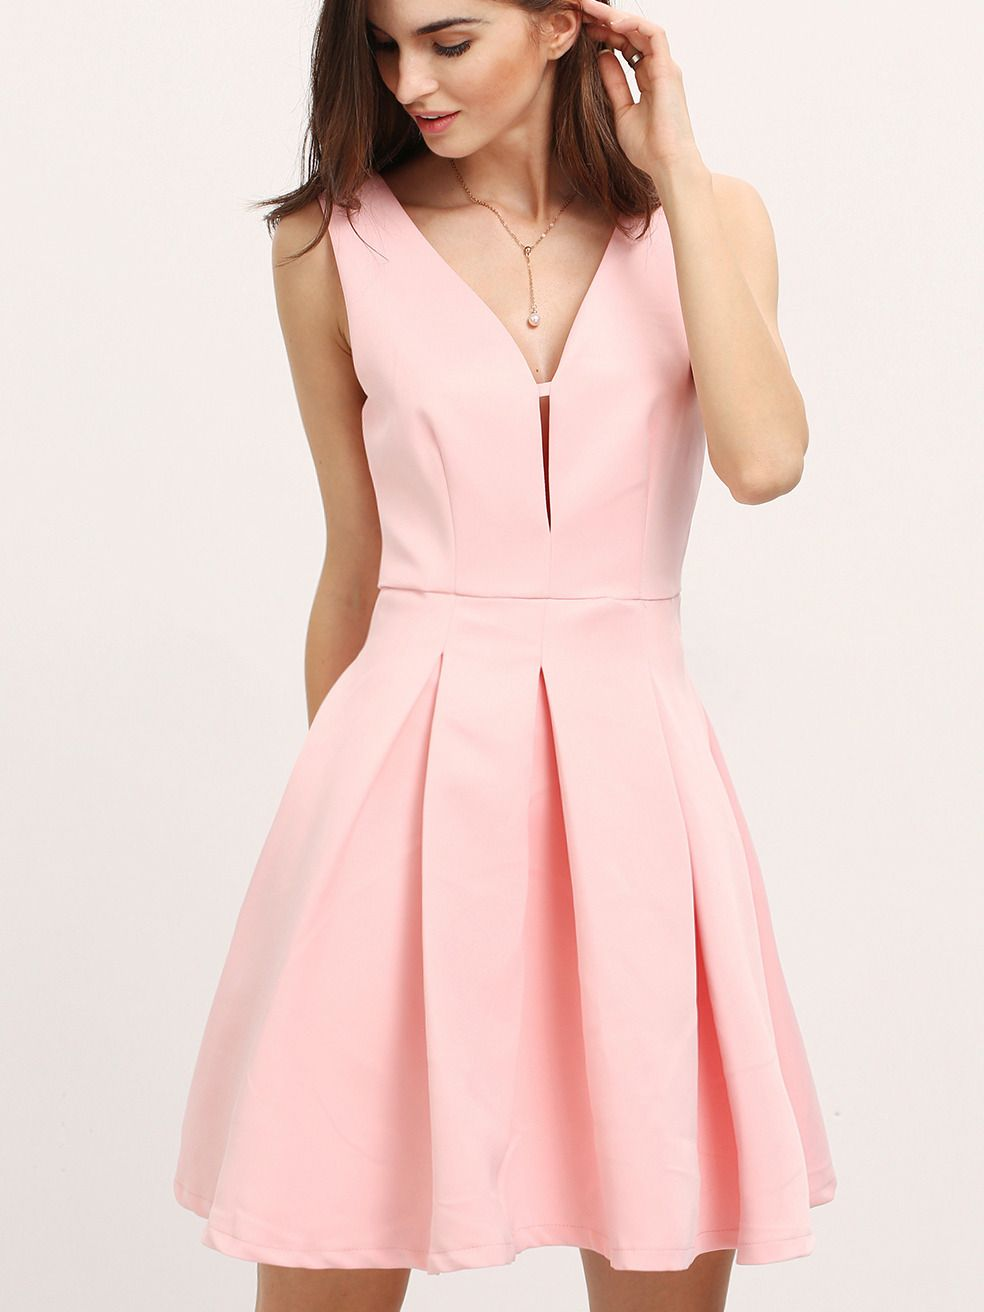 Pink Sleeveless Flare Dress | Vestiditos